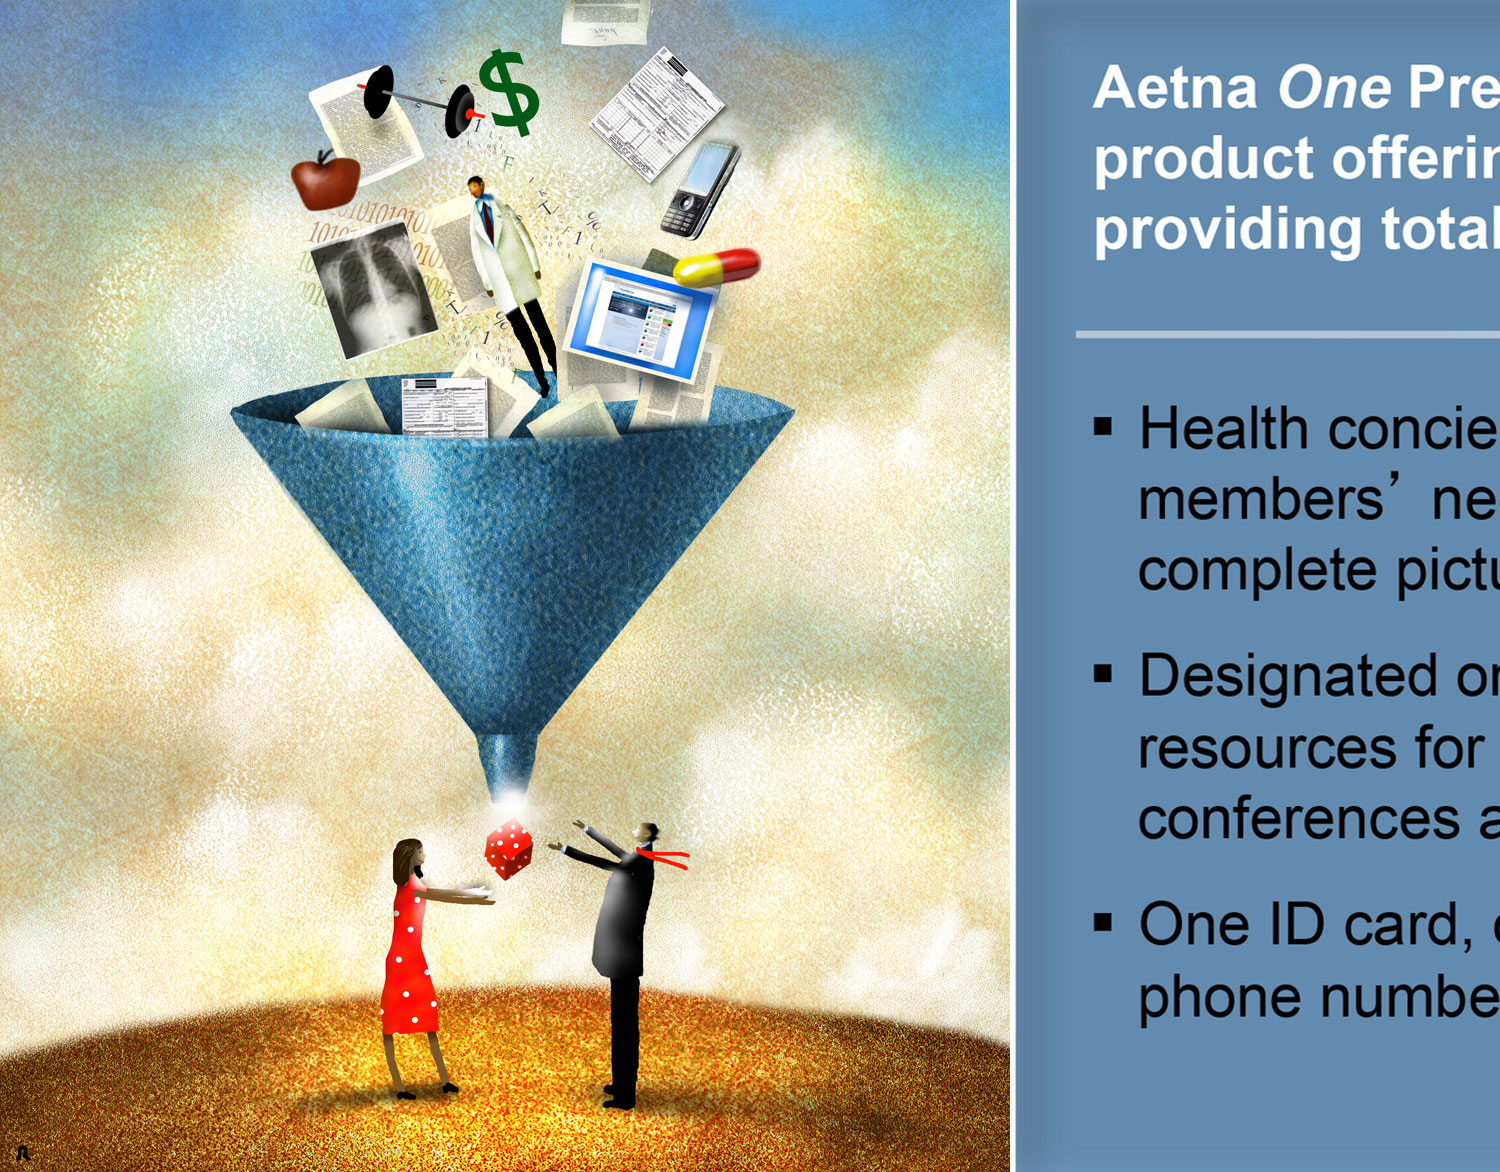 AETNA-ANIMATED-POWERPOINT-SLIDE.jpg